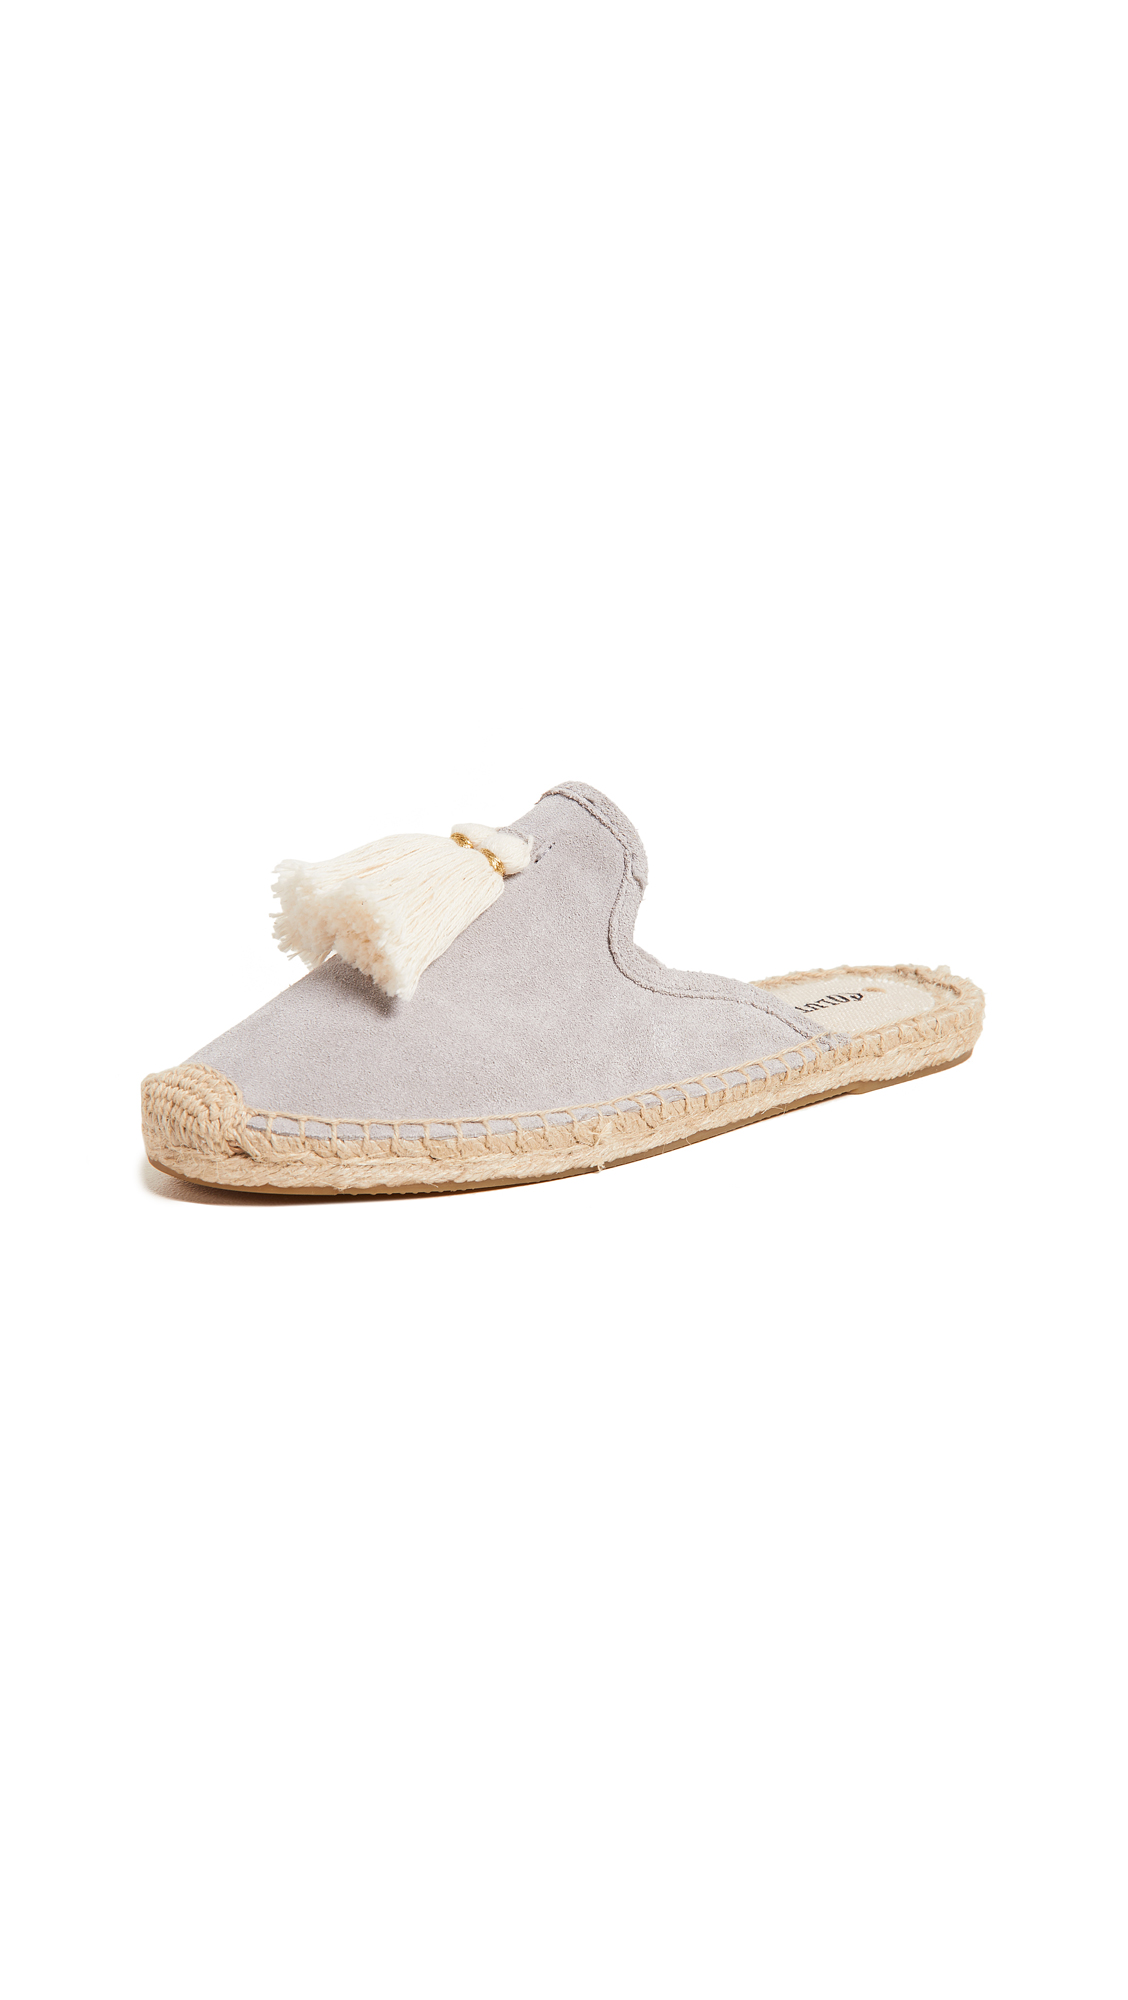 Soludos Tassel Suede Mules In Stone